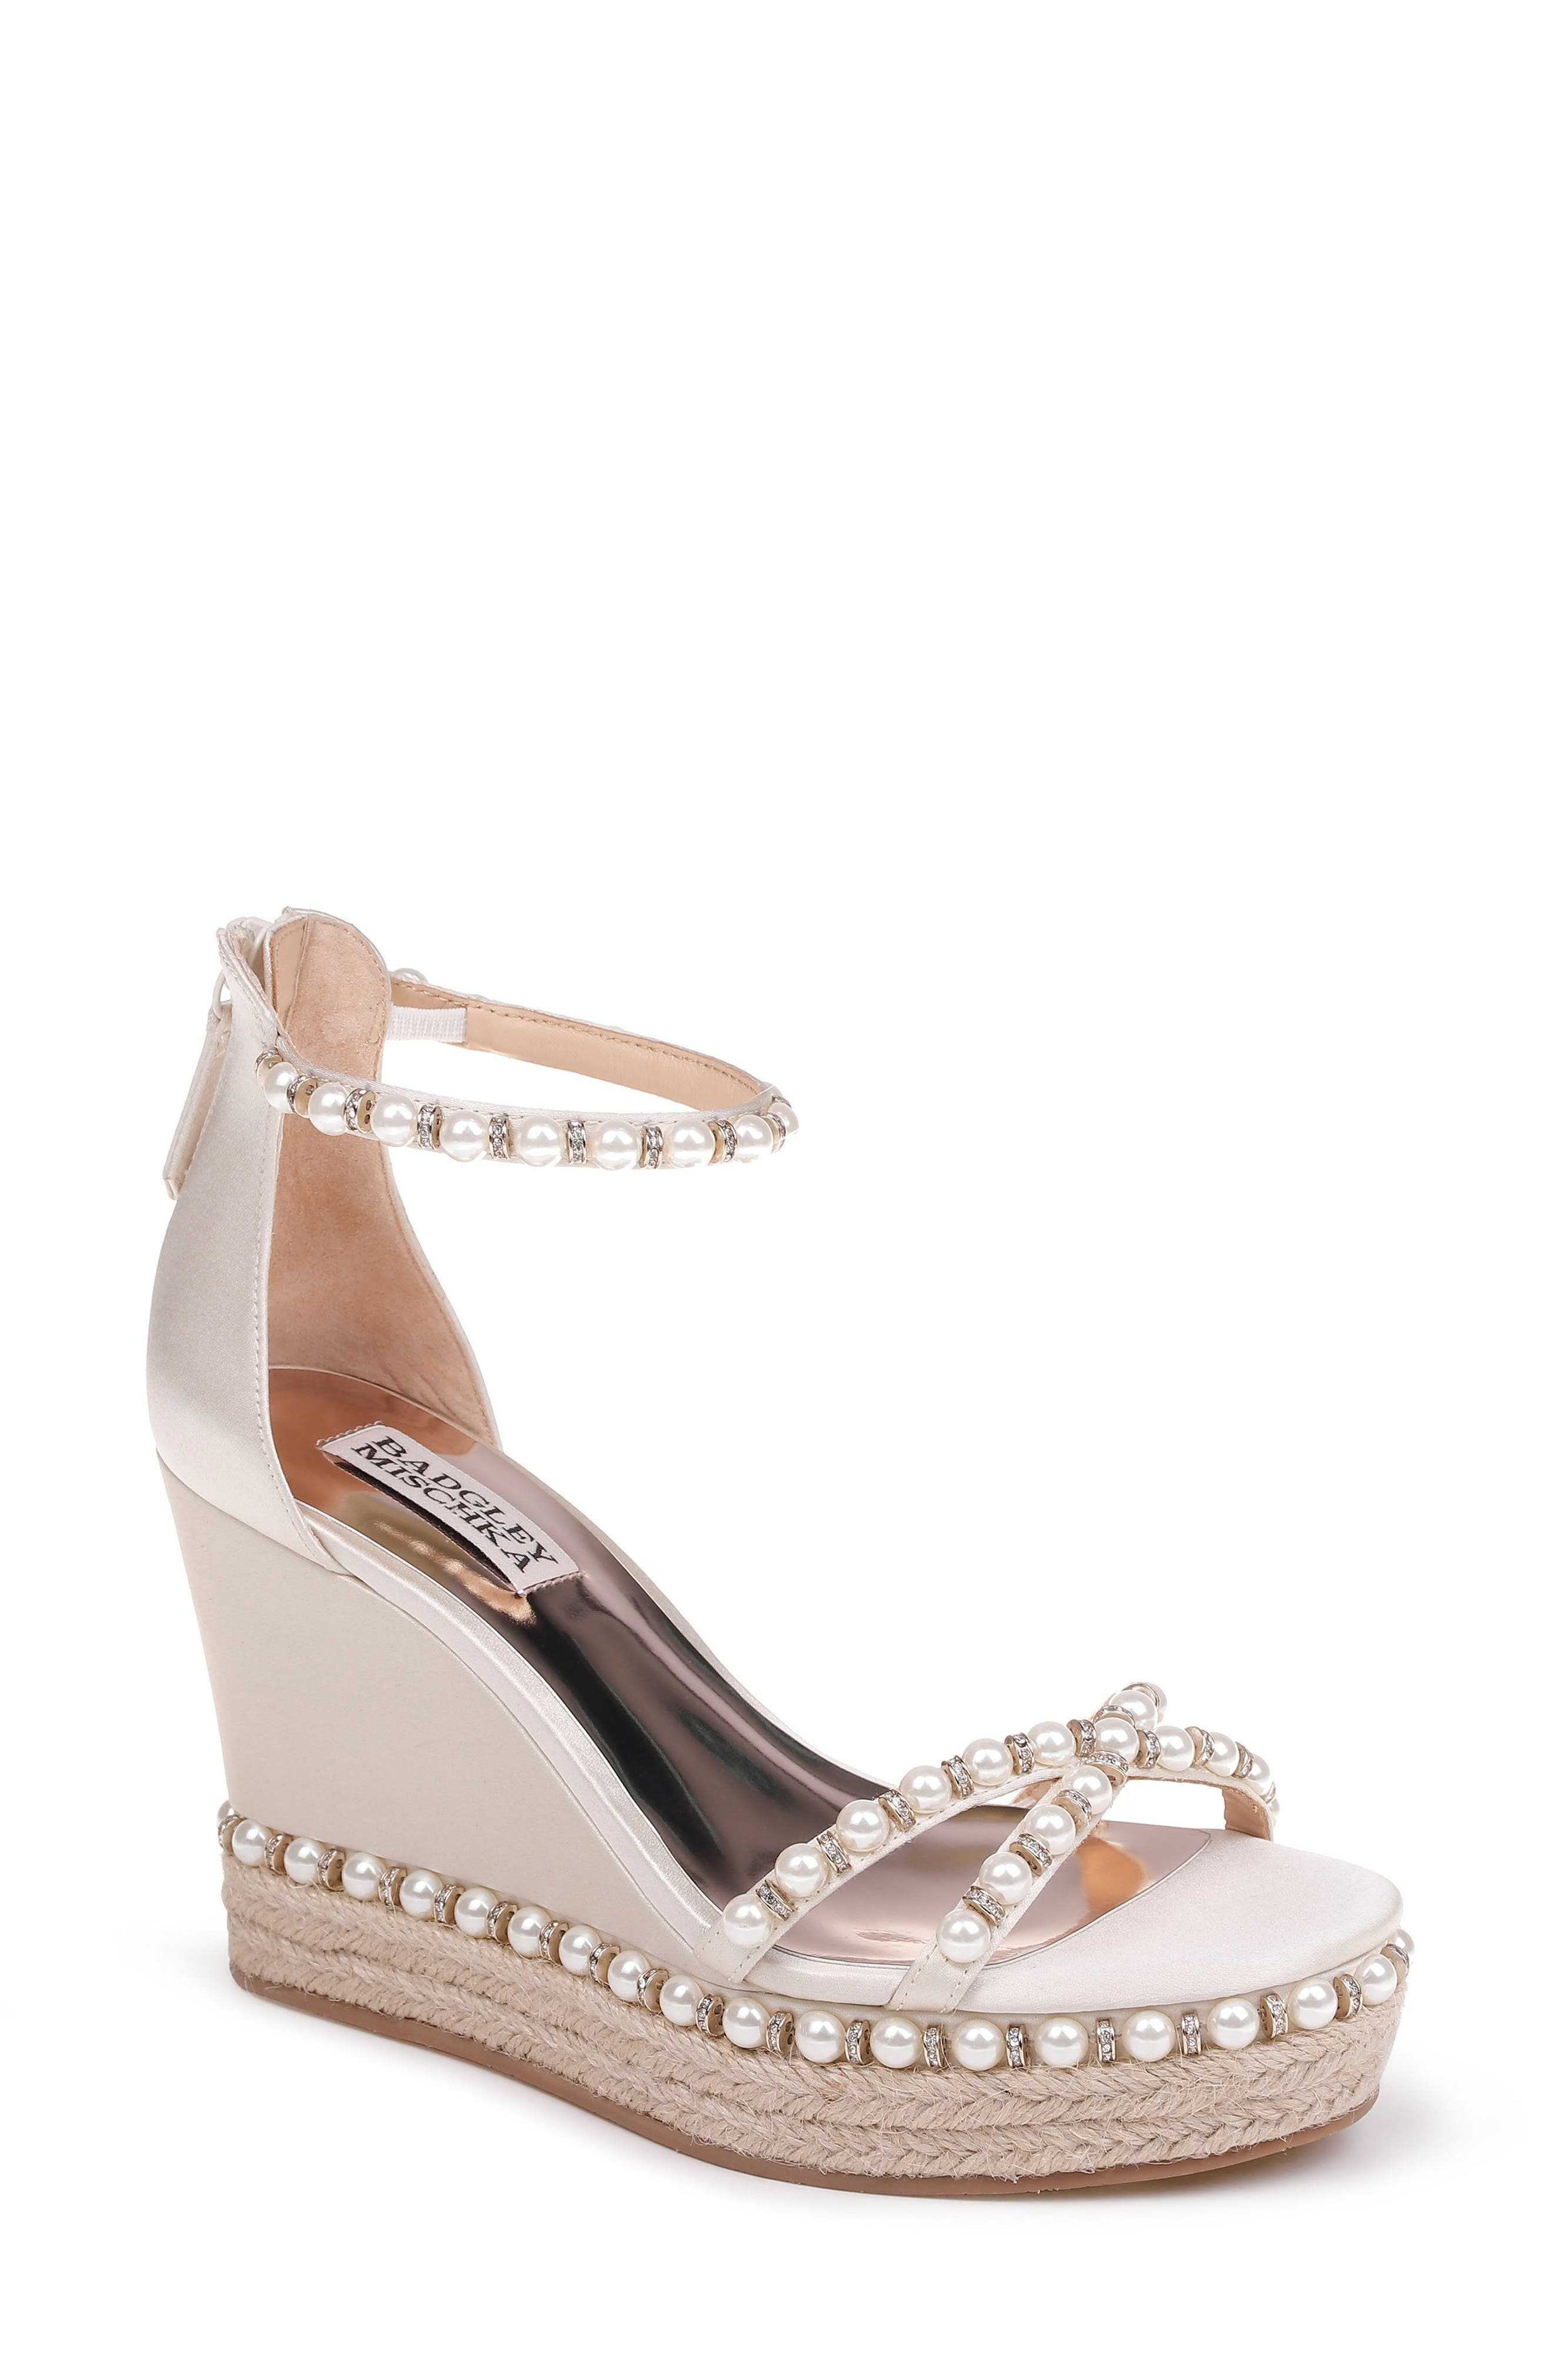 Sloan Wedge Sandal,                             Main thumbnail 1, color,                             Ivory Satin